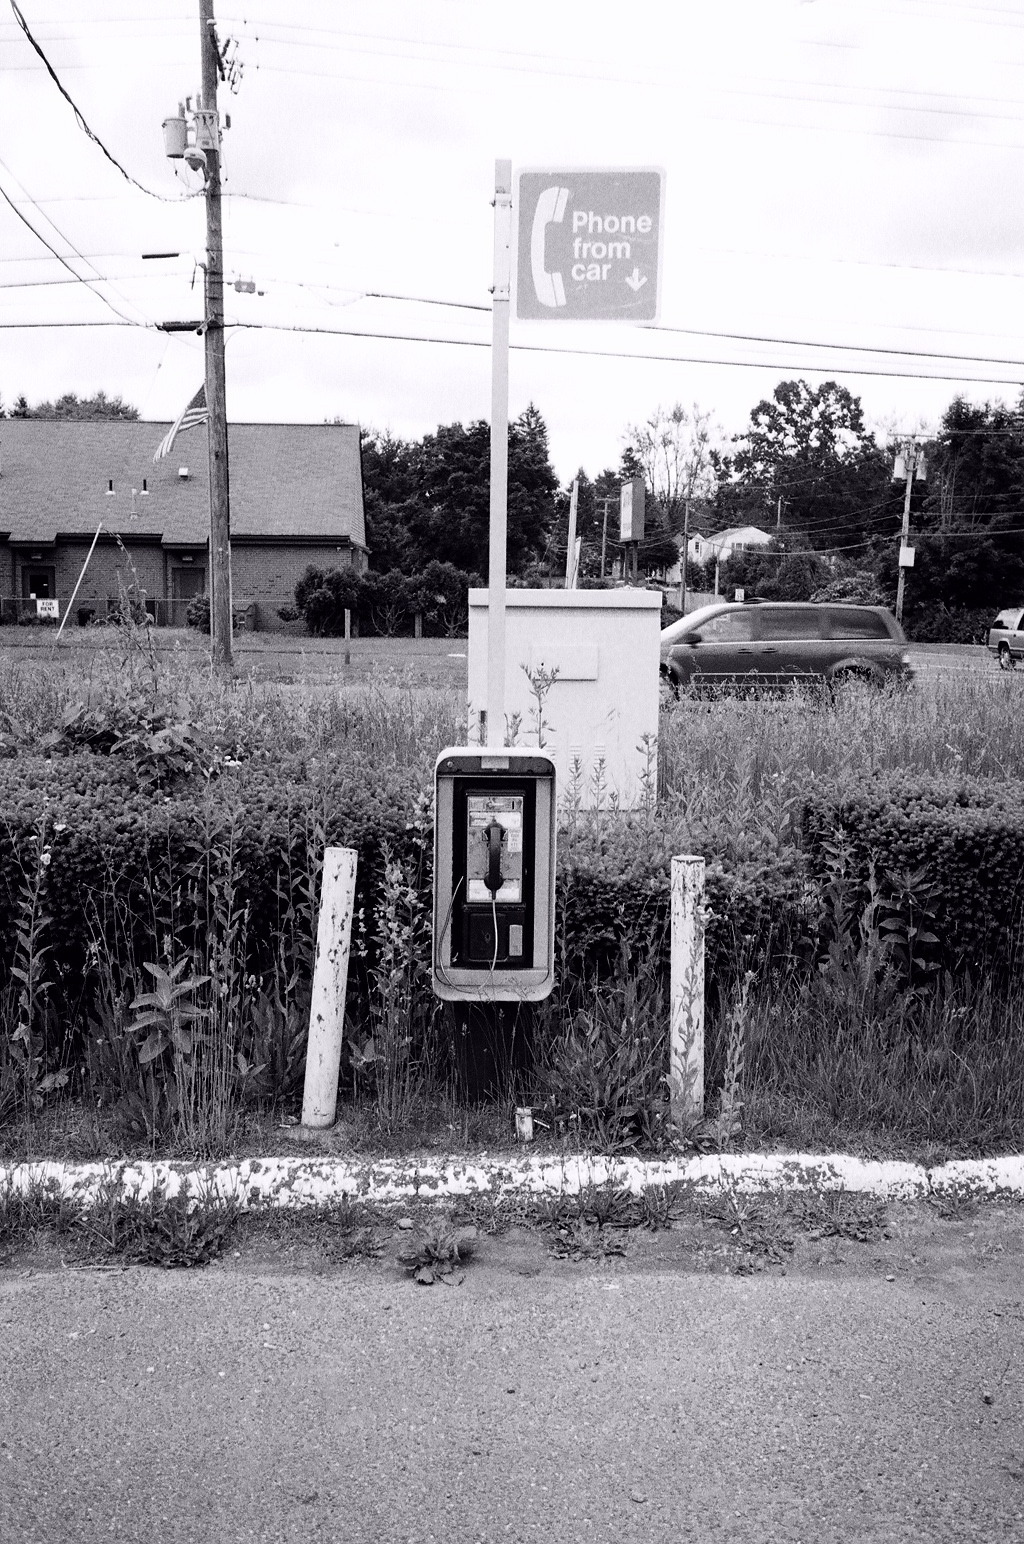 Drive up Pay Phone.